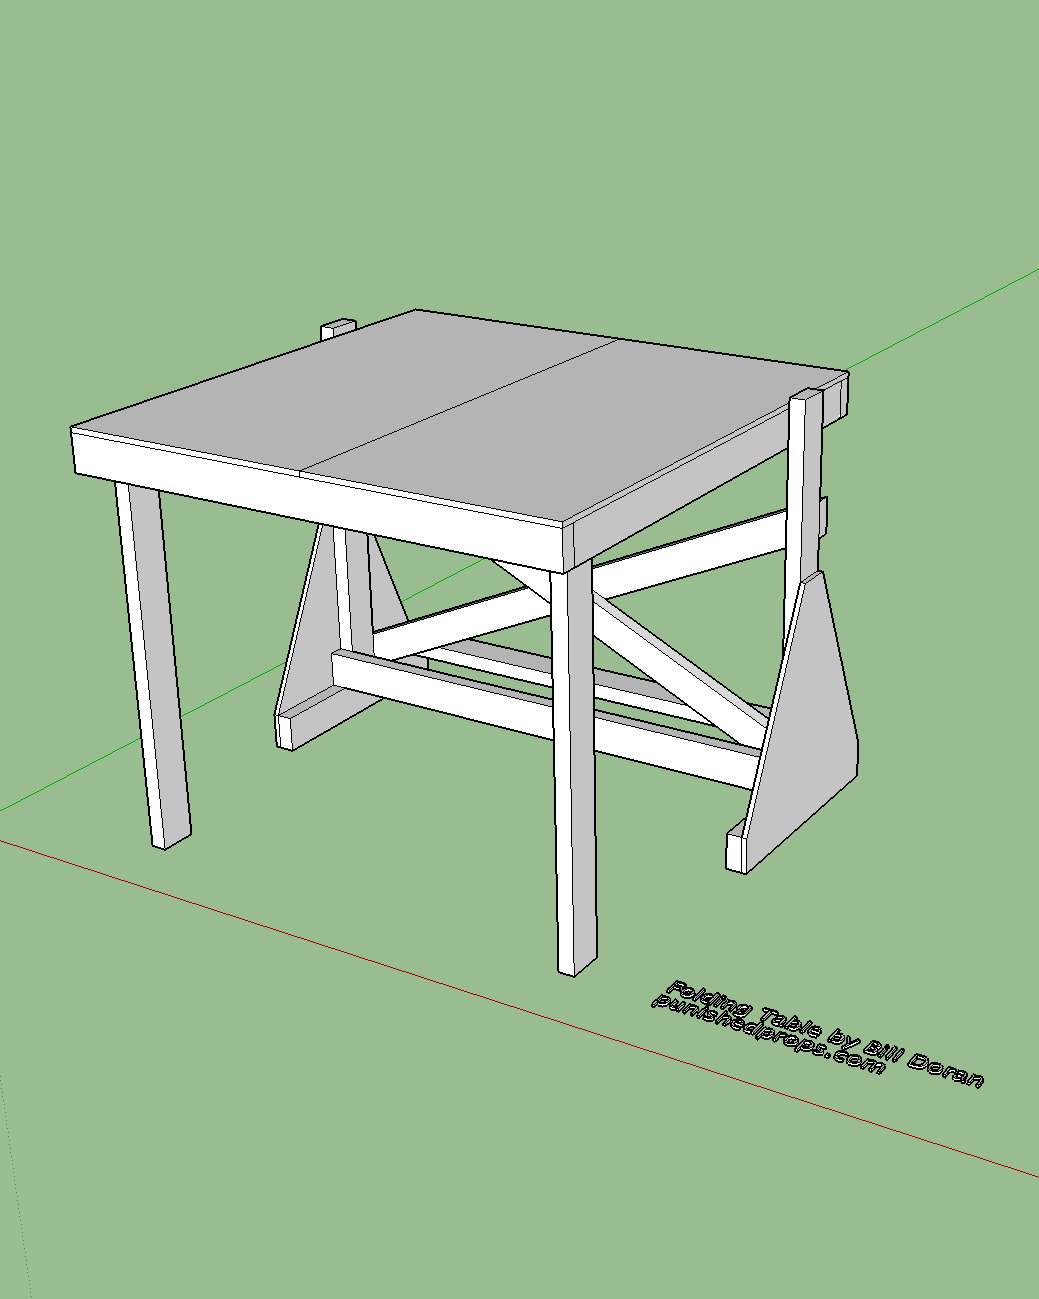 Sketchup plans free images for Table design sketchup